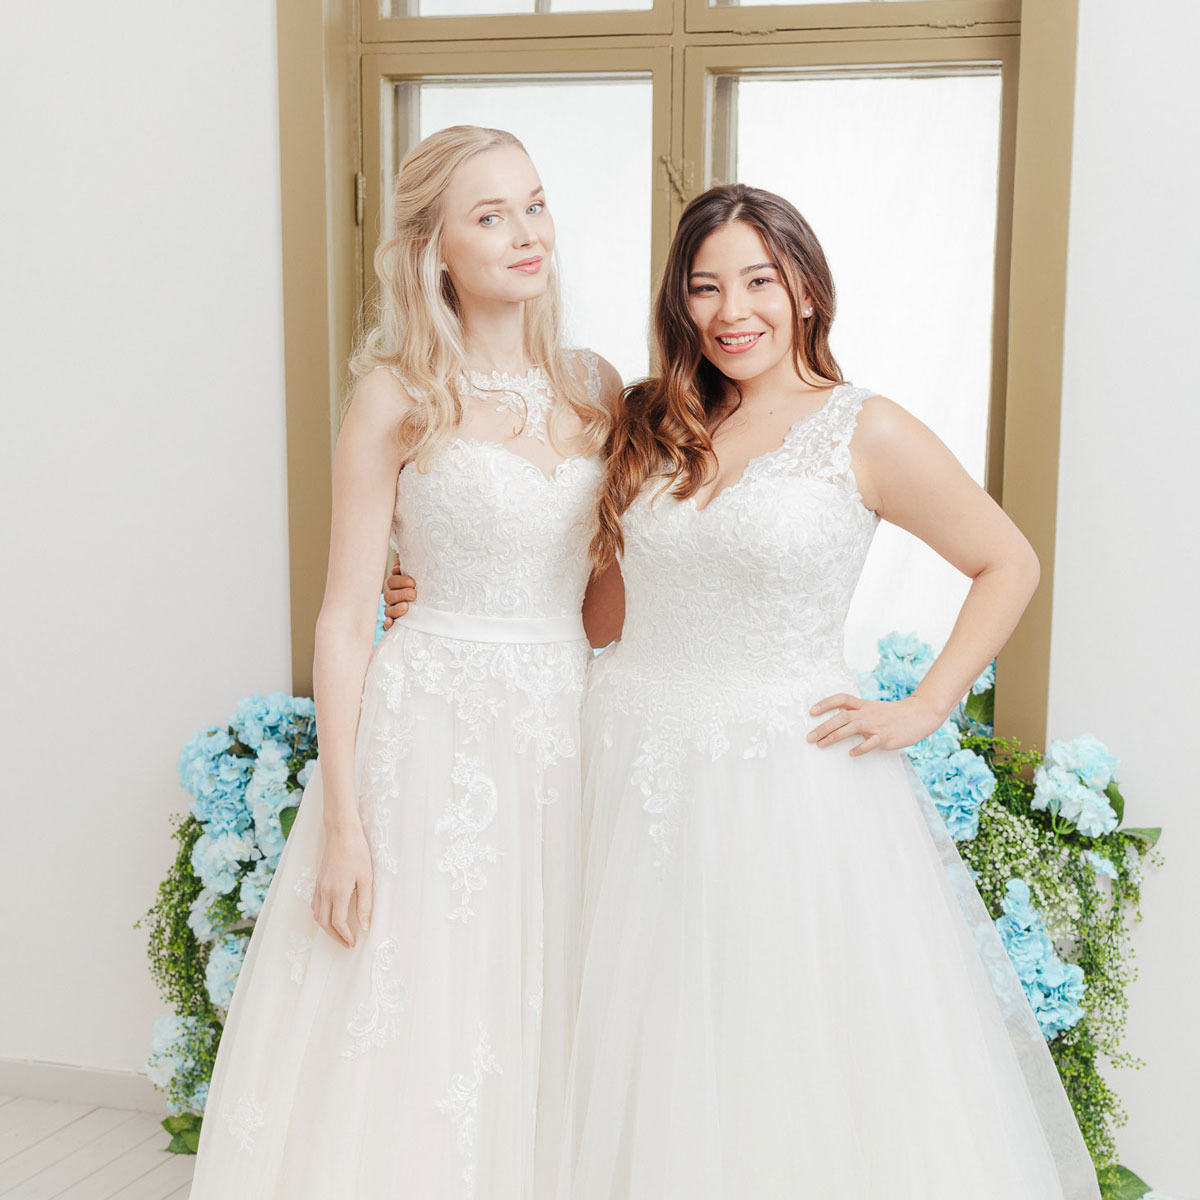 Plus size wedding dress and a lace wedding dress-Victoria & Vincent